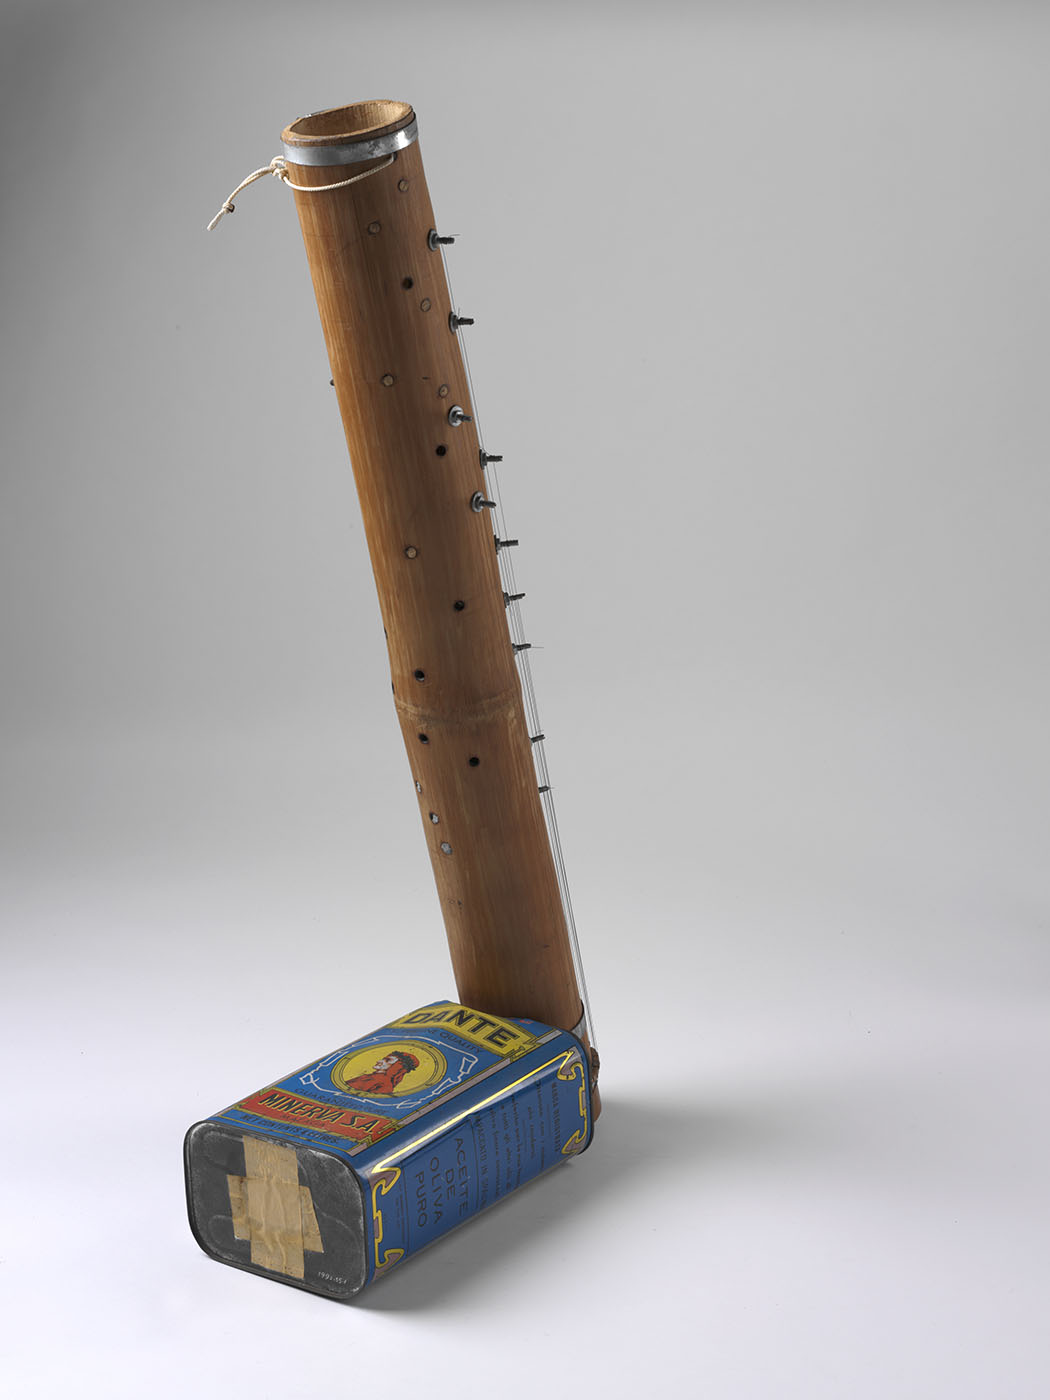 A musical instrument consisting of a bamboo tube with keys and strings down the sides and a blue olive oil tin at the base. - click to view larger image